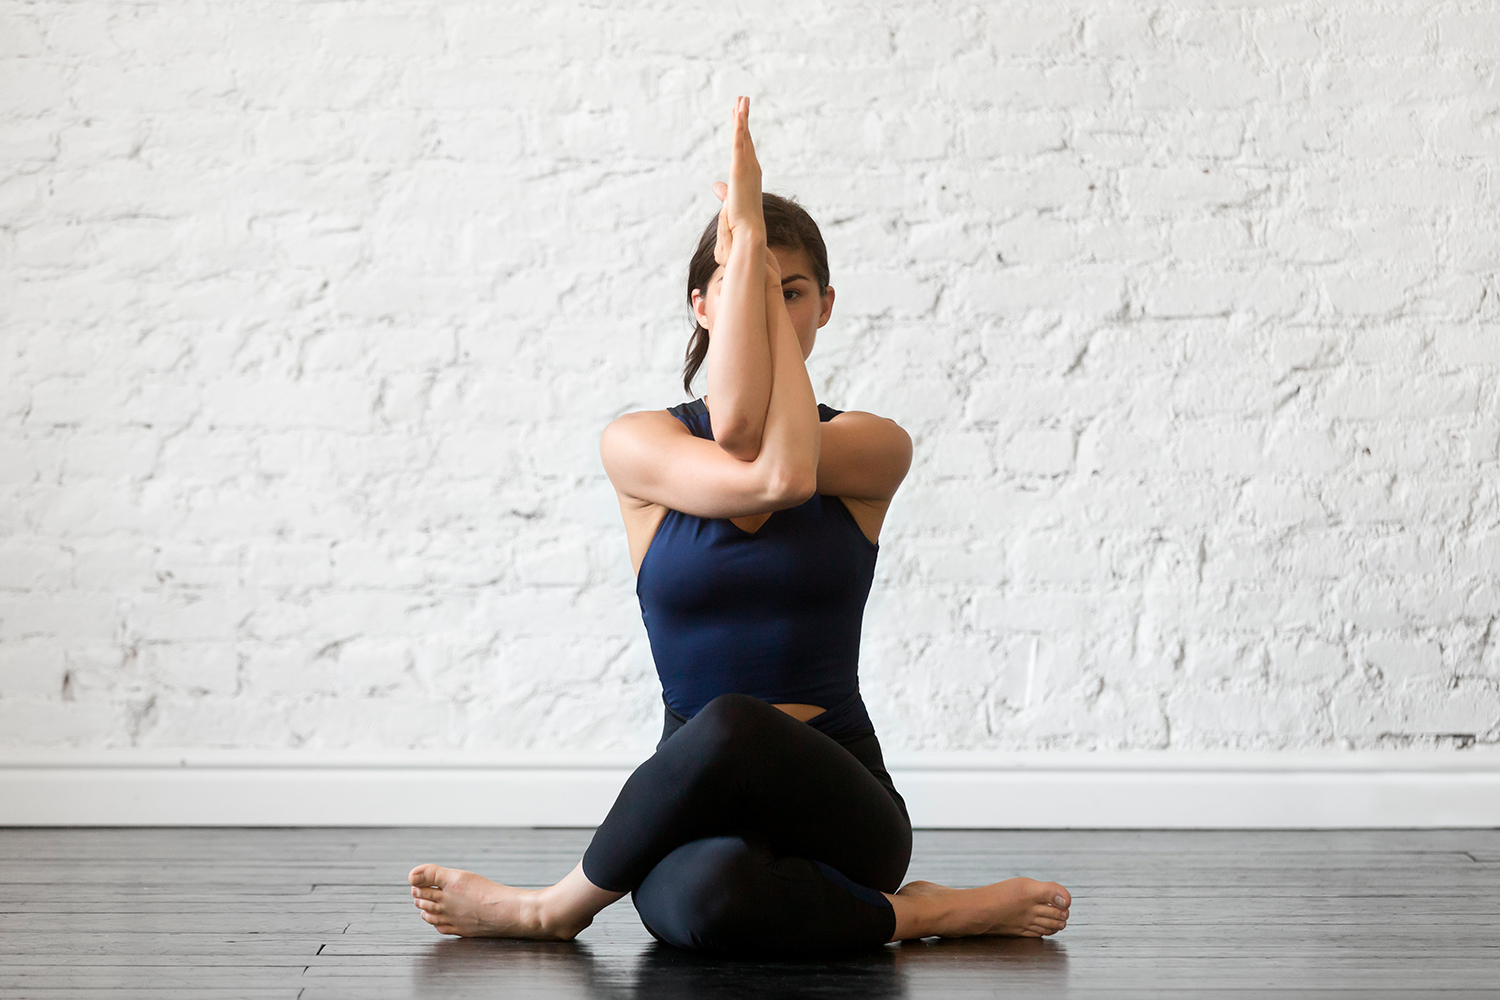 A Yin Yoga Sequence To Balance & Align The Chakras - yoga practice